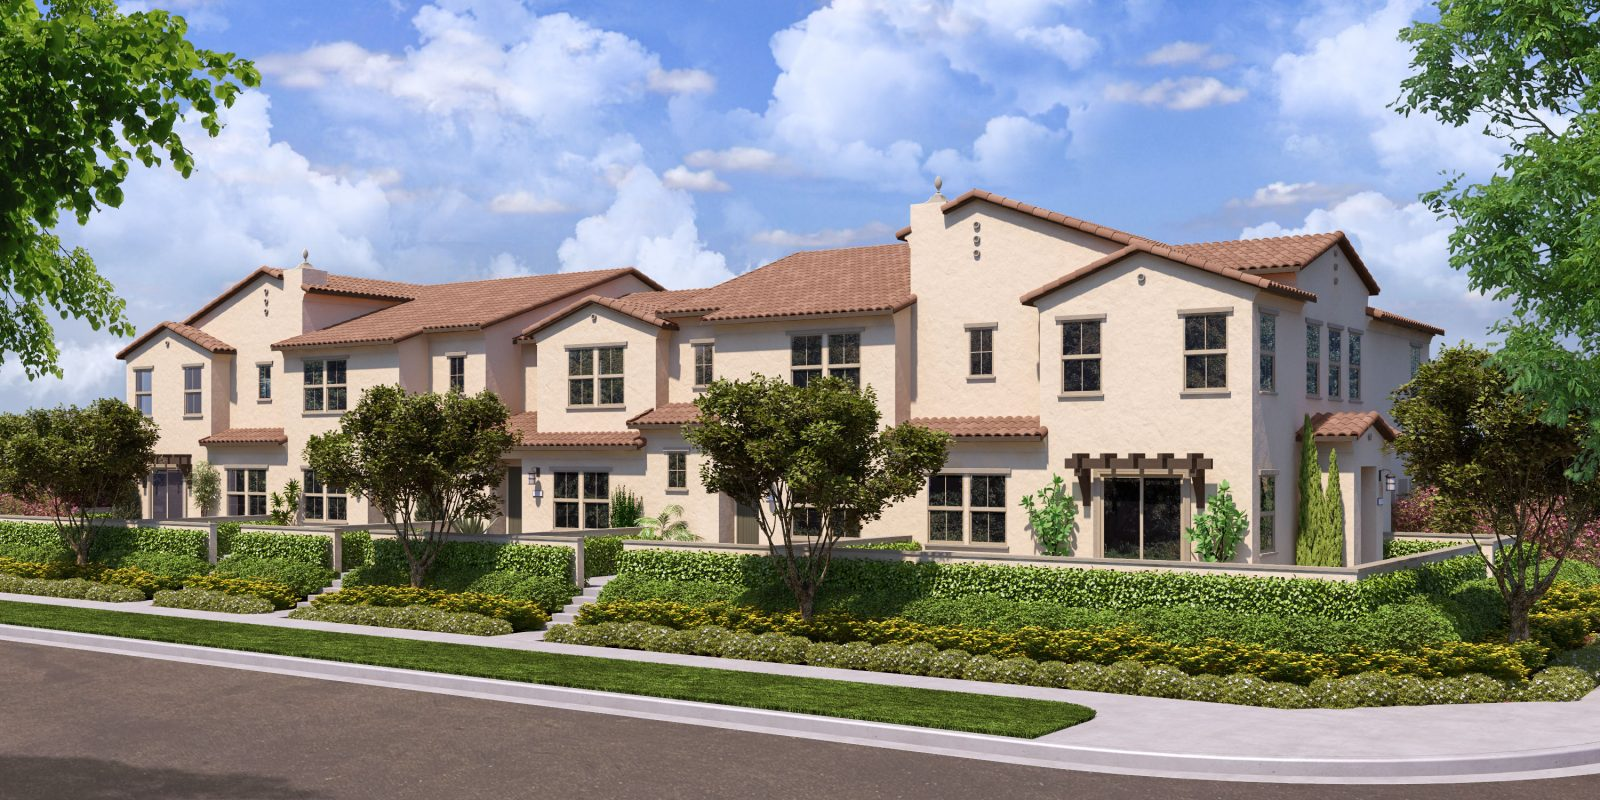 New Townhomes in San Diego for Sale